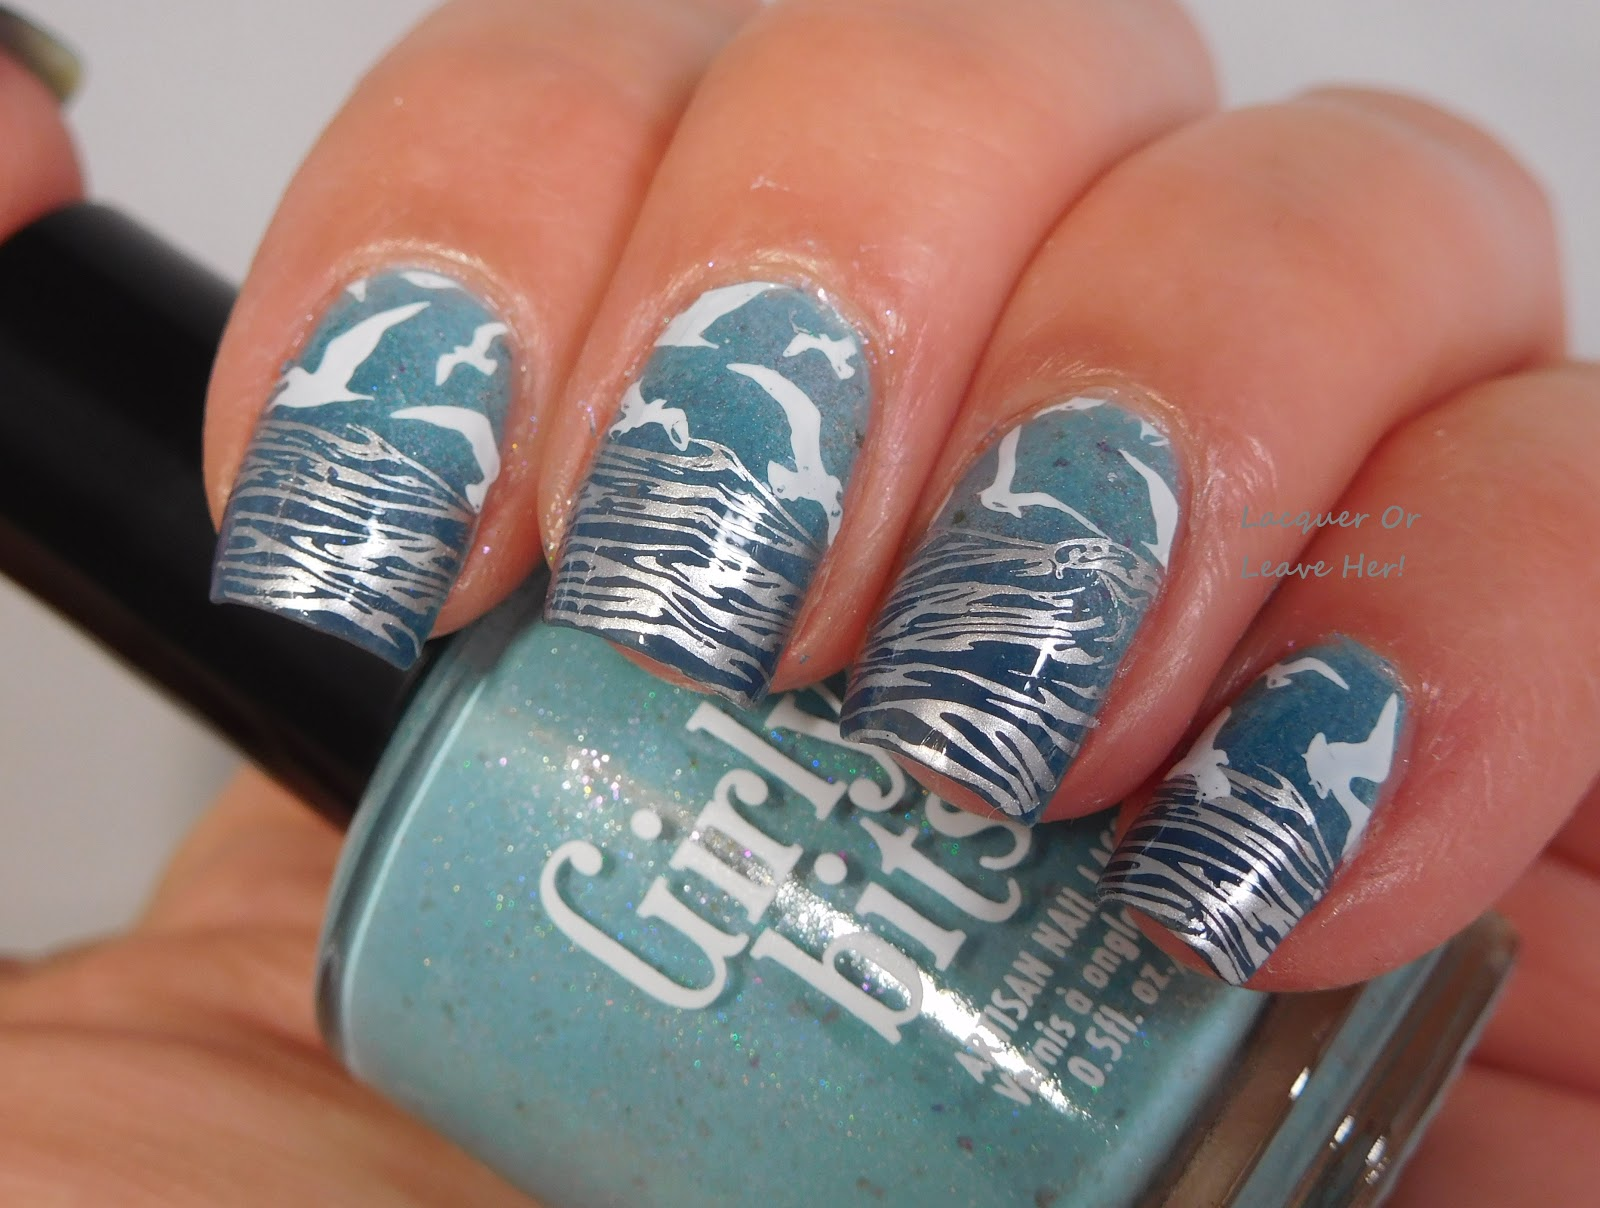 Lacquer or Leave Her!: Lina Nail Art Supplies Born To Sail 02!